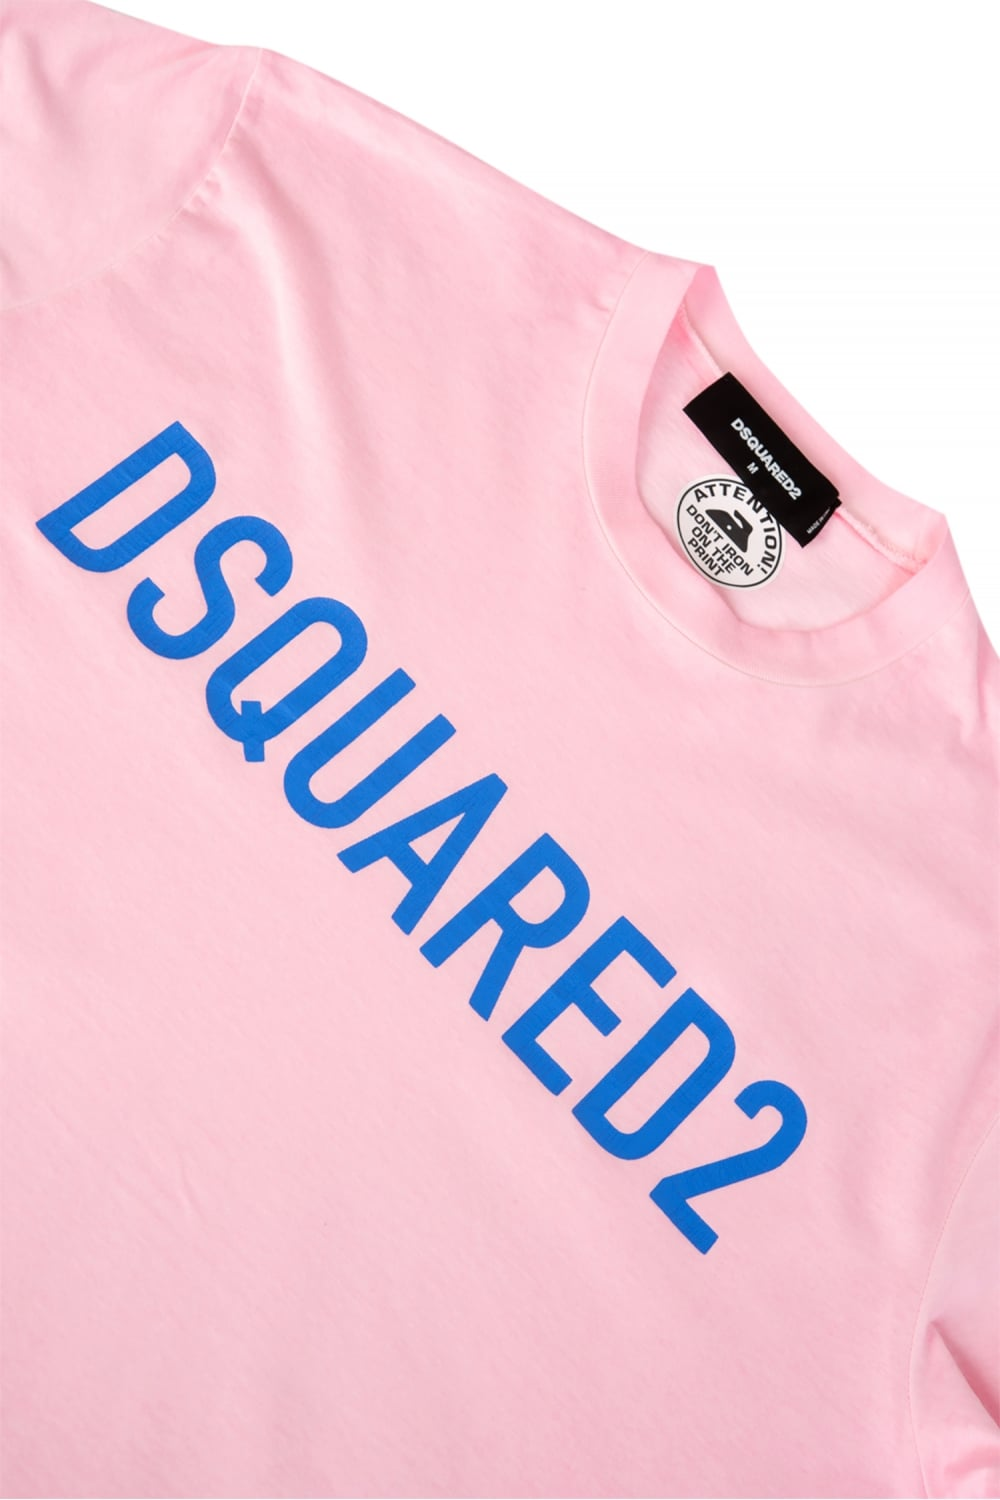 dsquared logo tshirt pink. Black Bedroom Furniture Sets. Home Design Ideas